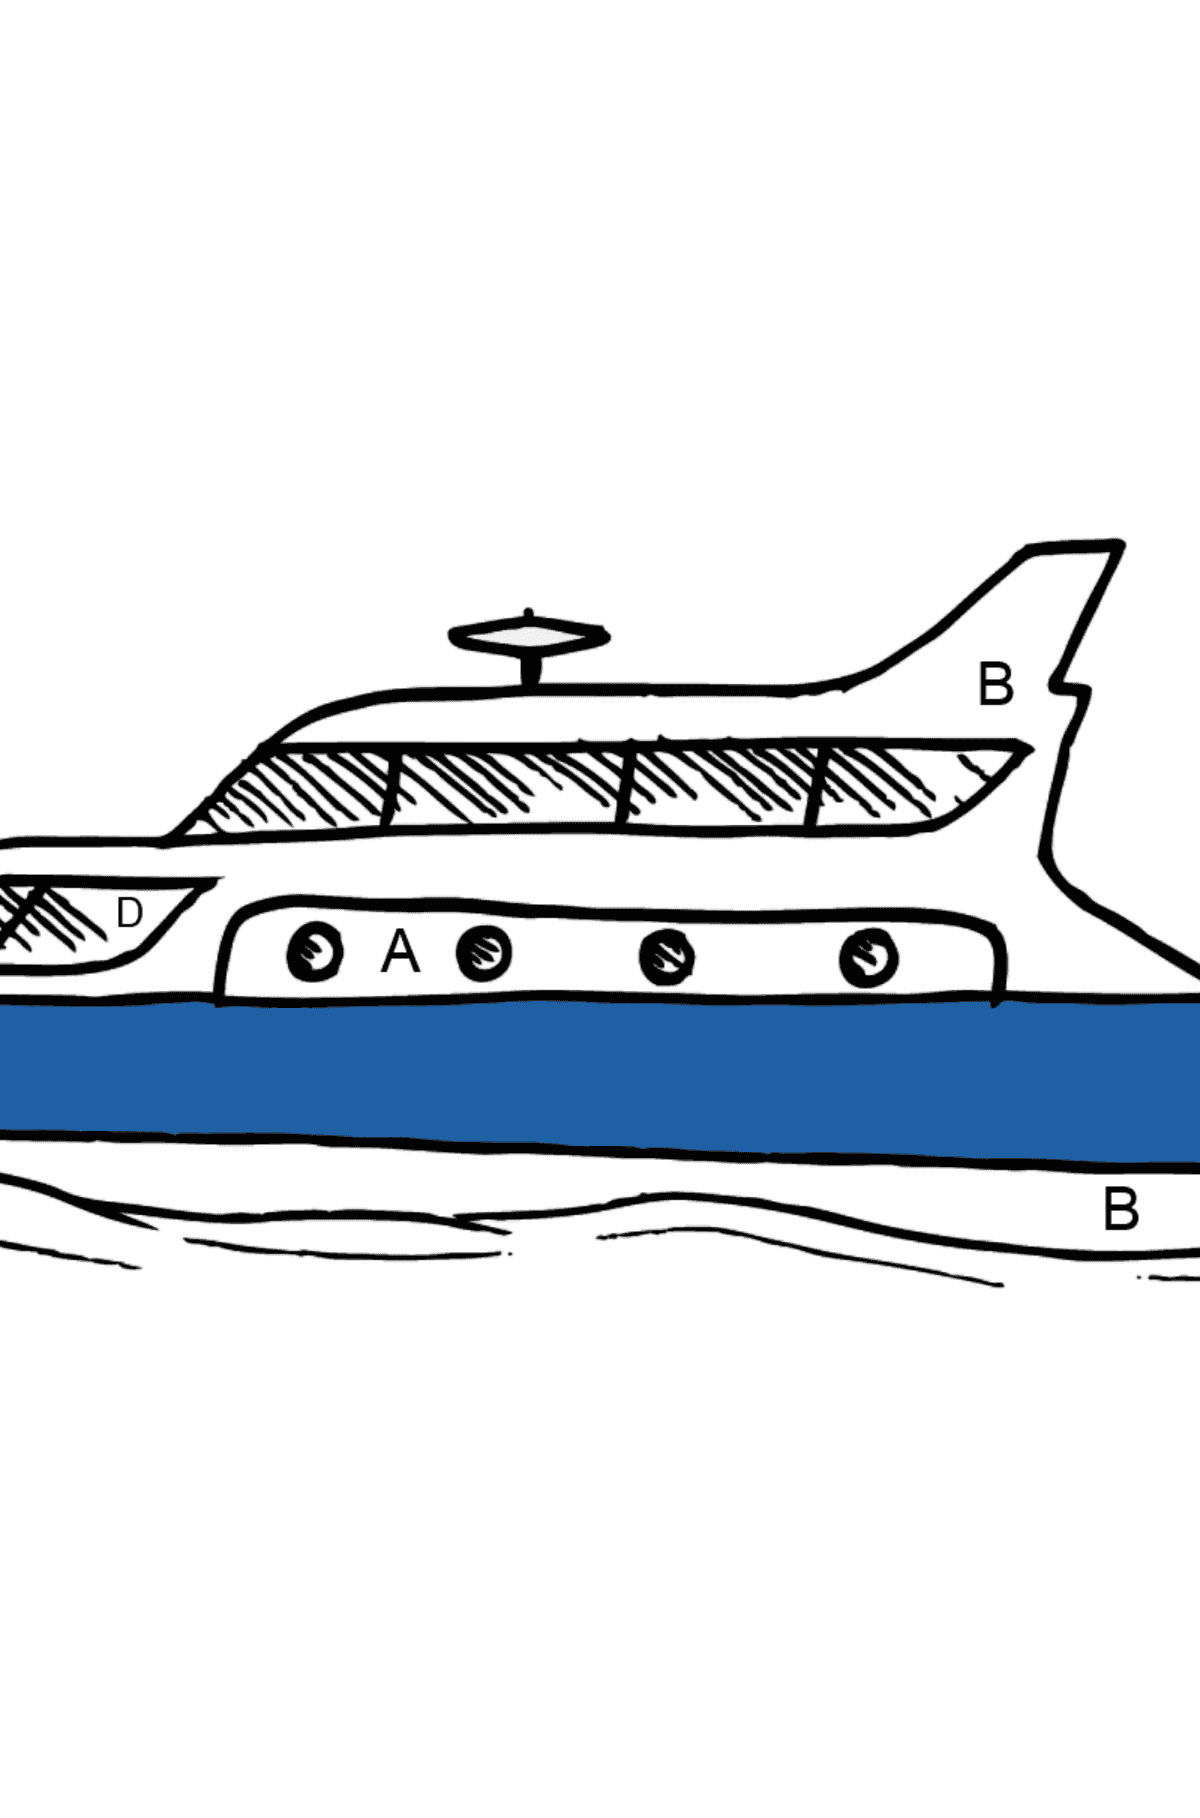 Coloring Page - A Yacht - Coloring by Letters for Kids